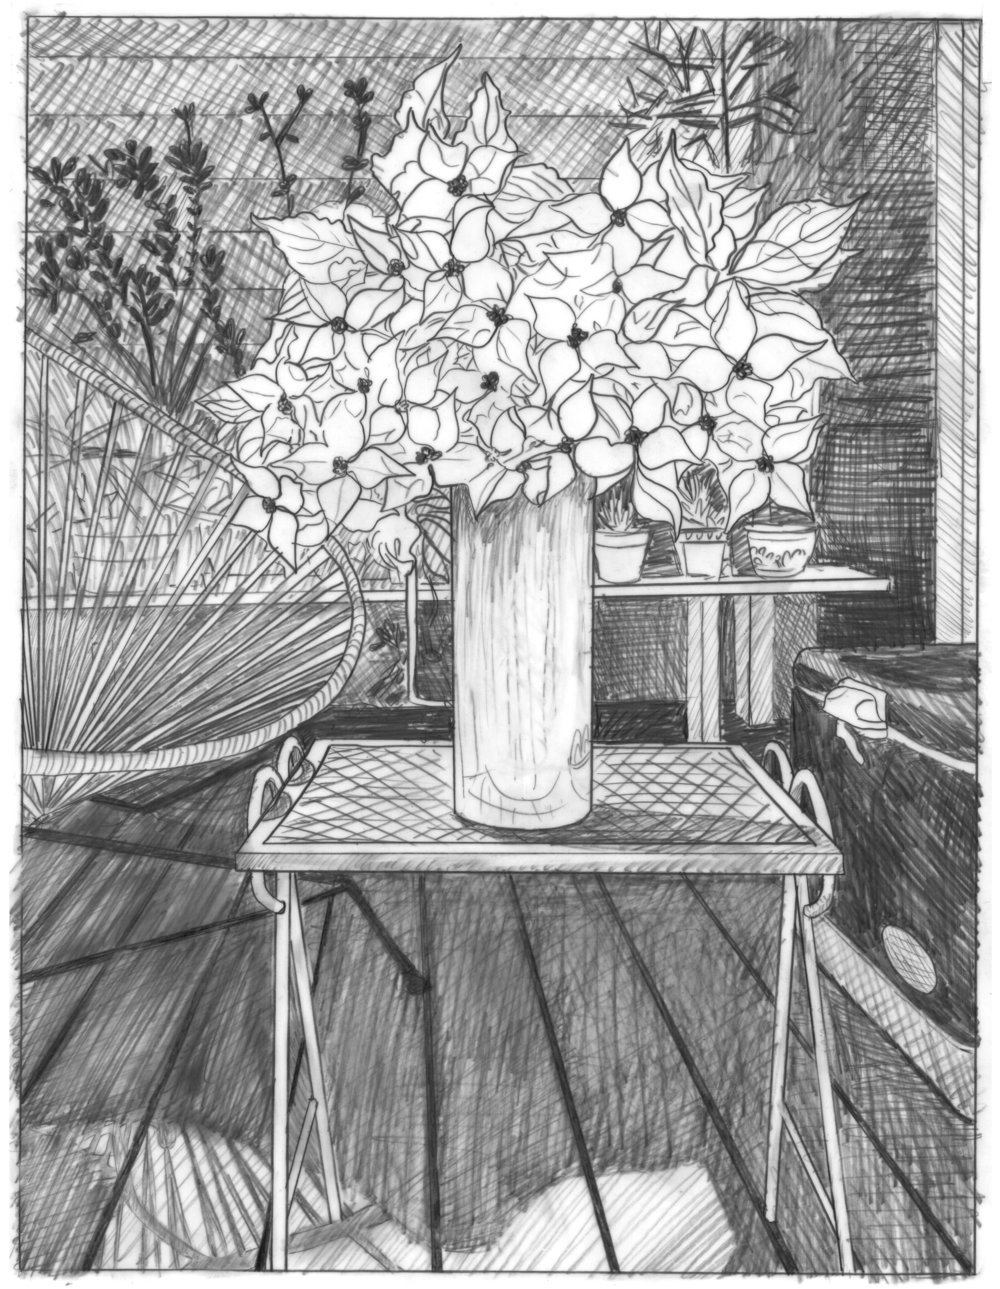 Greenpoint Dogwood/Domestic Bliss (graphite)